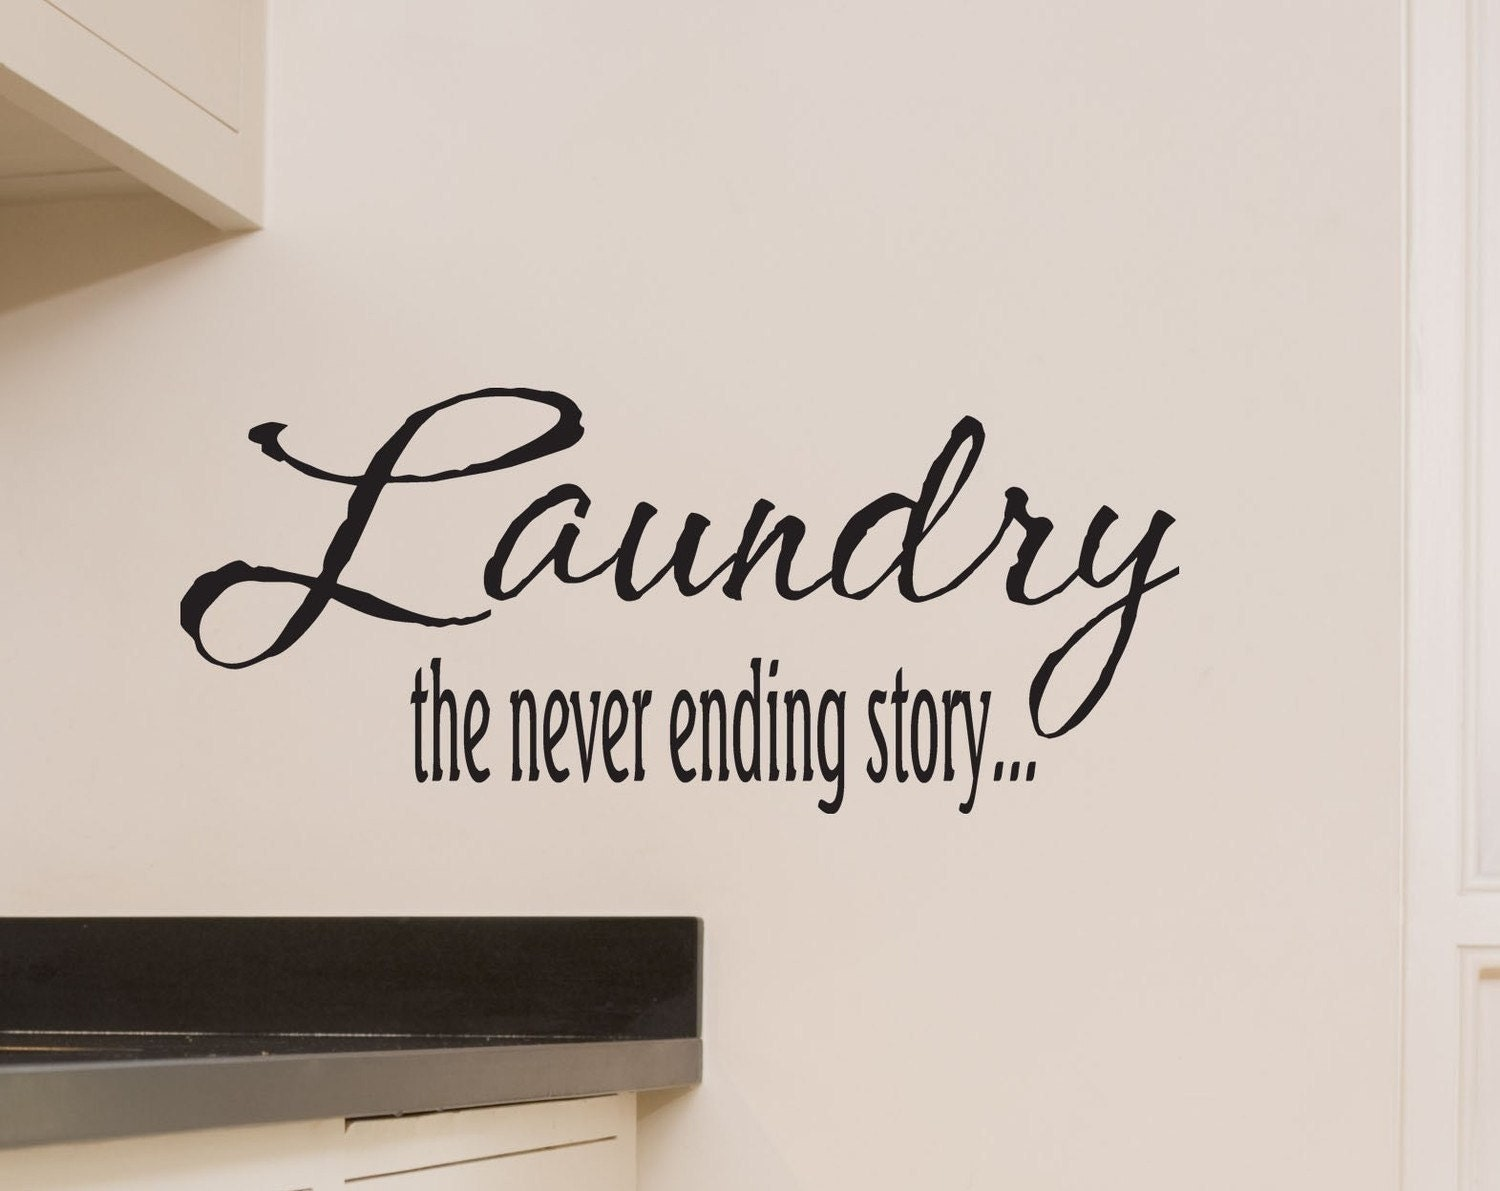 Laundry Decal Wall Decor New Laundry Room Wall Decal Laundry The Never Ending Story Wall Review